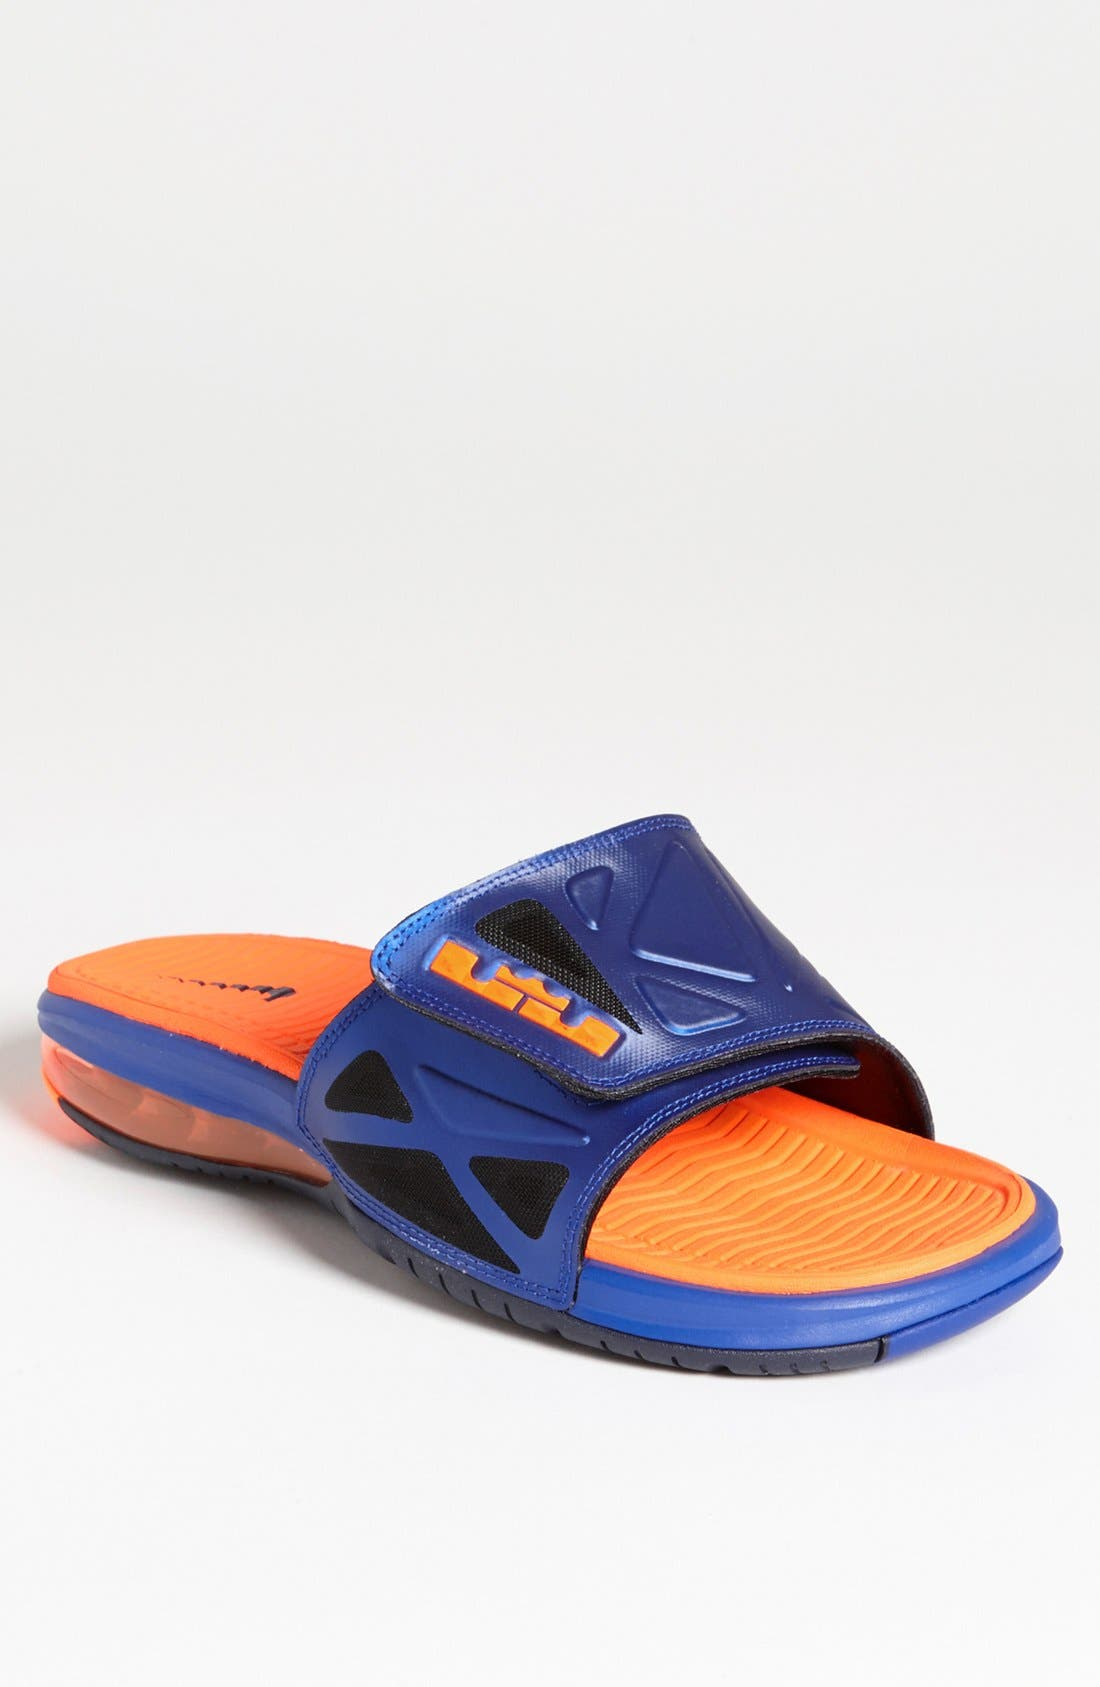 Alternate Image 1 Selected - Nike 'Air LeBron 2 Slide Elite' Sandal (Men)